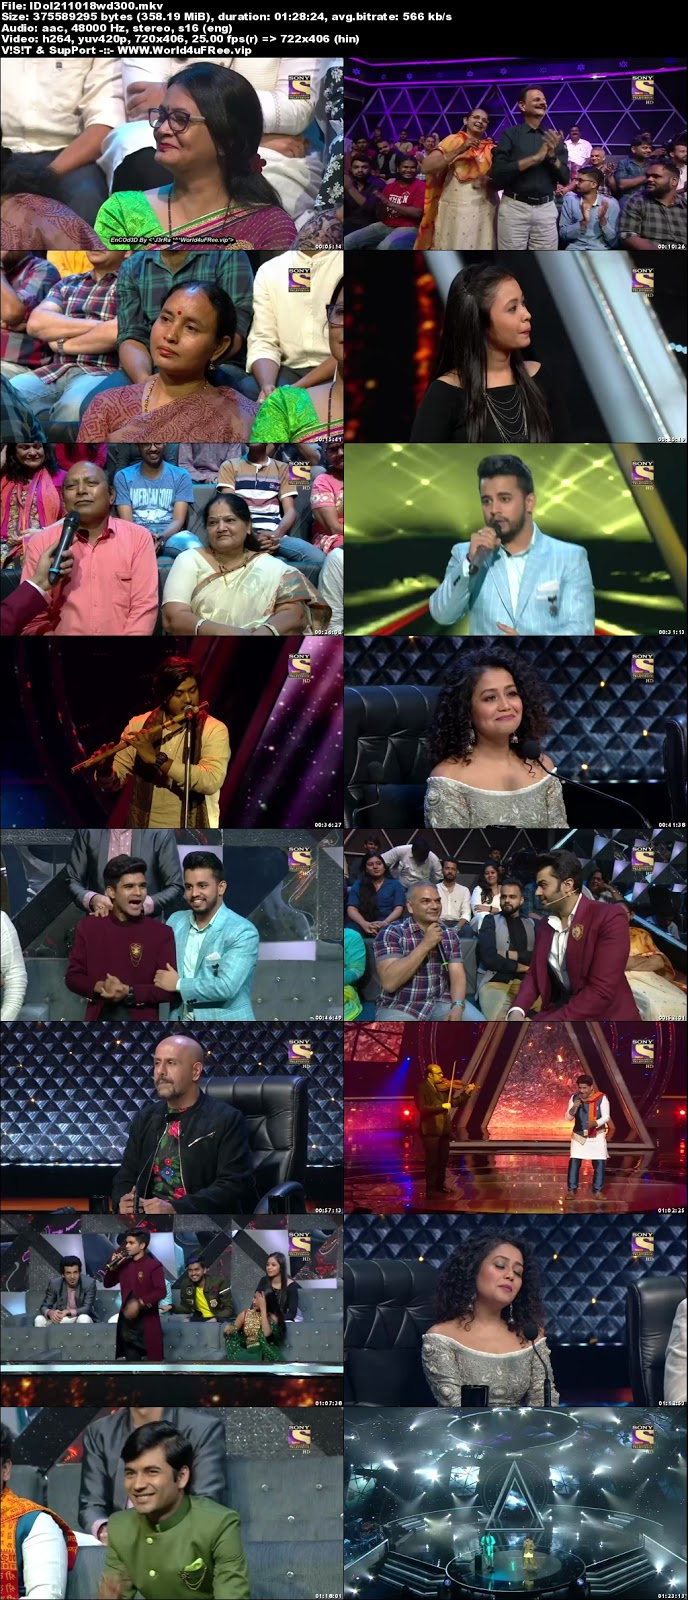 Indian Idol Season 10 21 October 2018 HDTV 480p 300Mb world4ufree.vip tv show Indian Idol Season 10 hindi tv show Indian Idol Season 10 Sony Set tv show compressed small size free download or watch online at world4ufree.vip